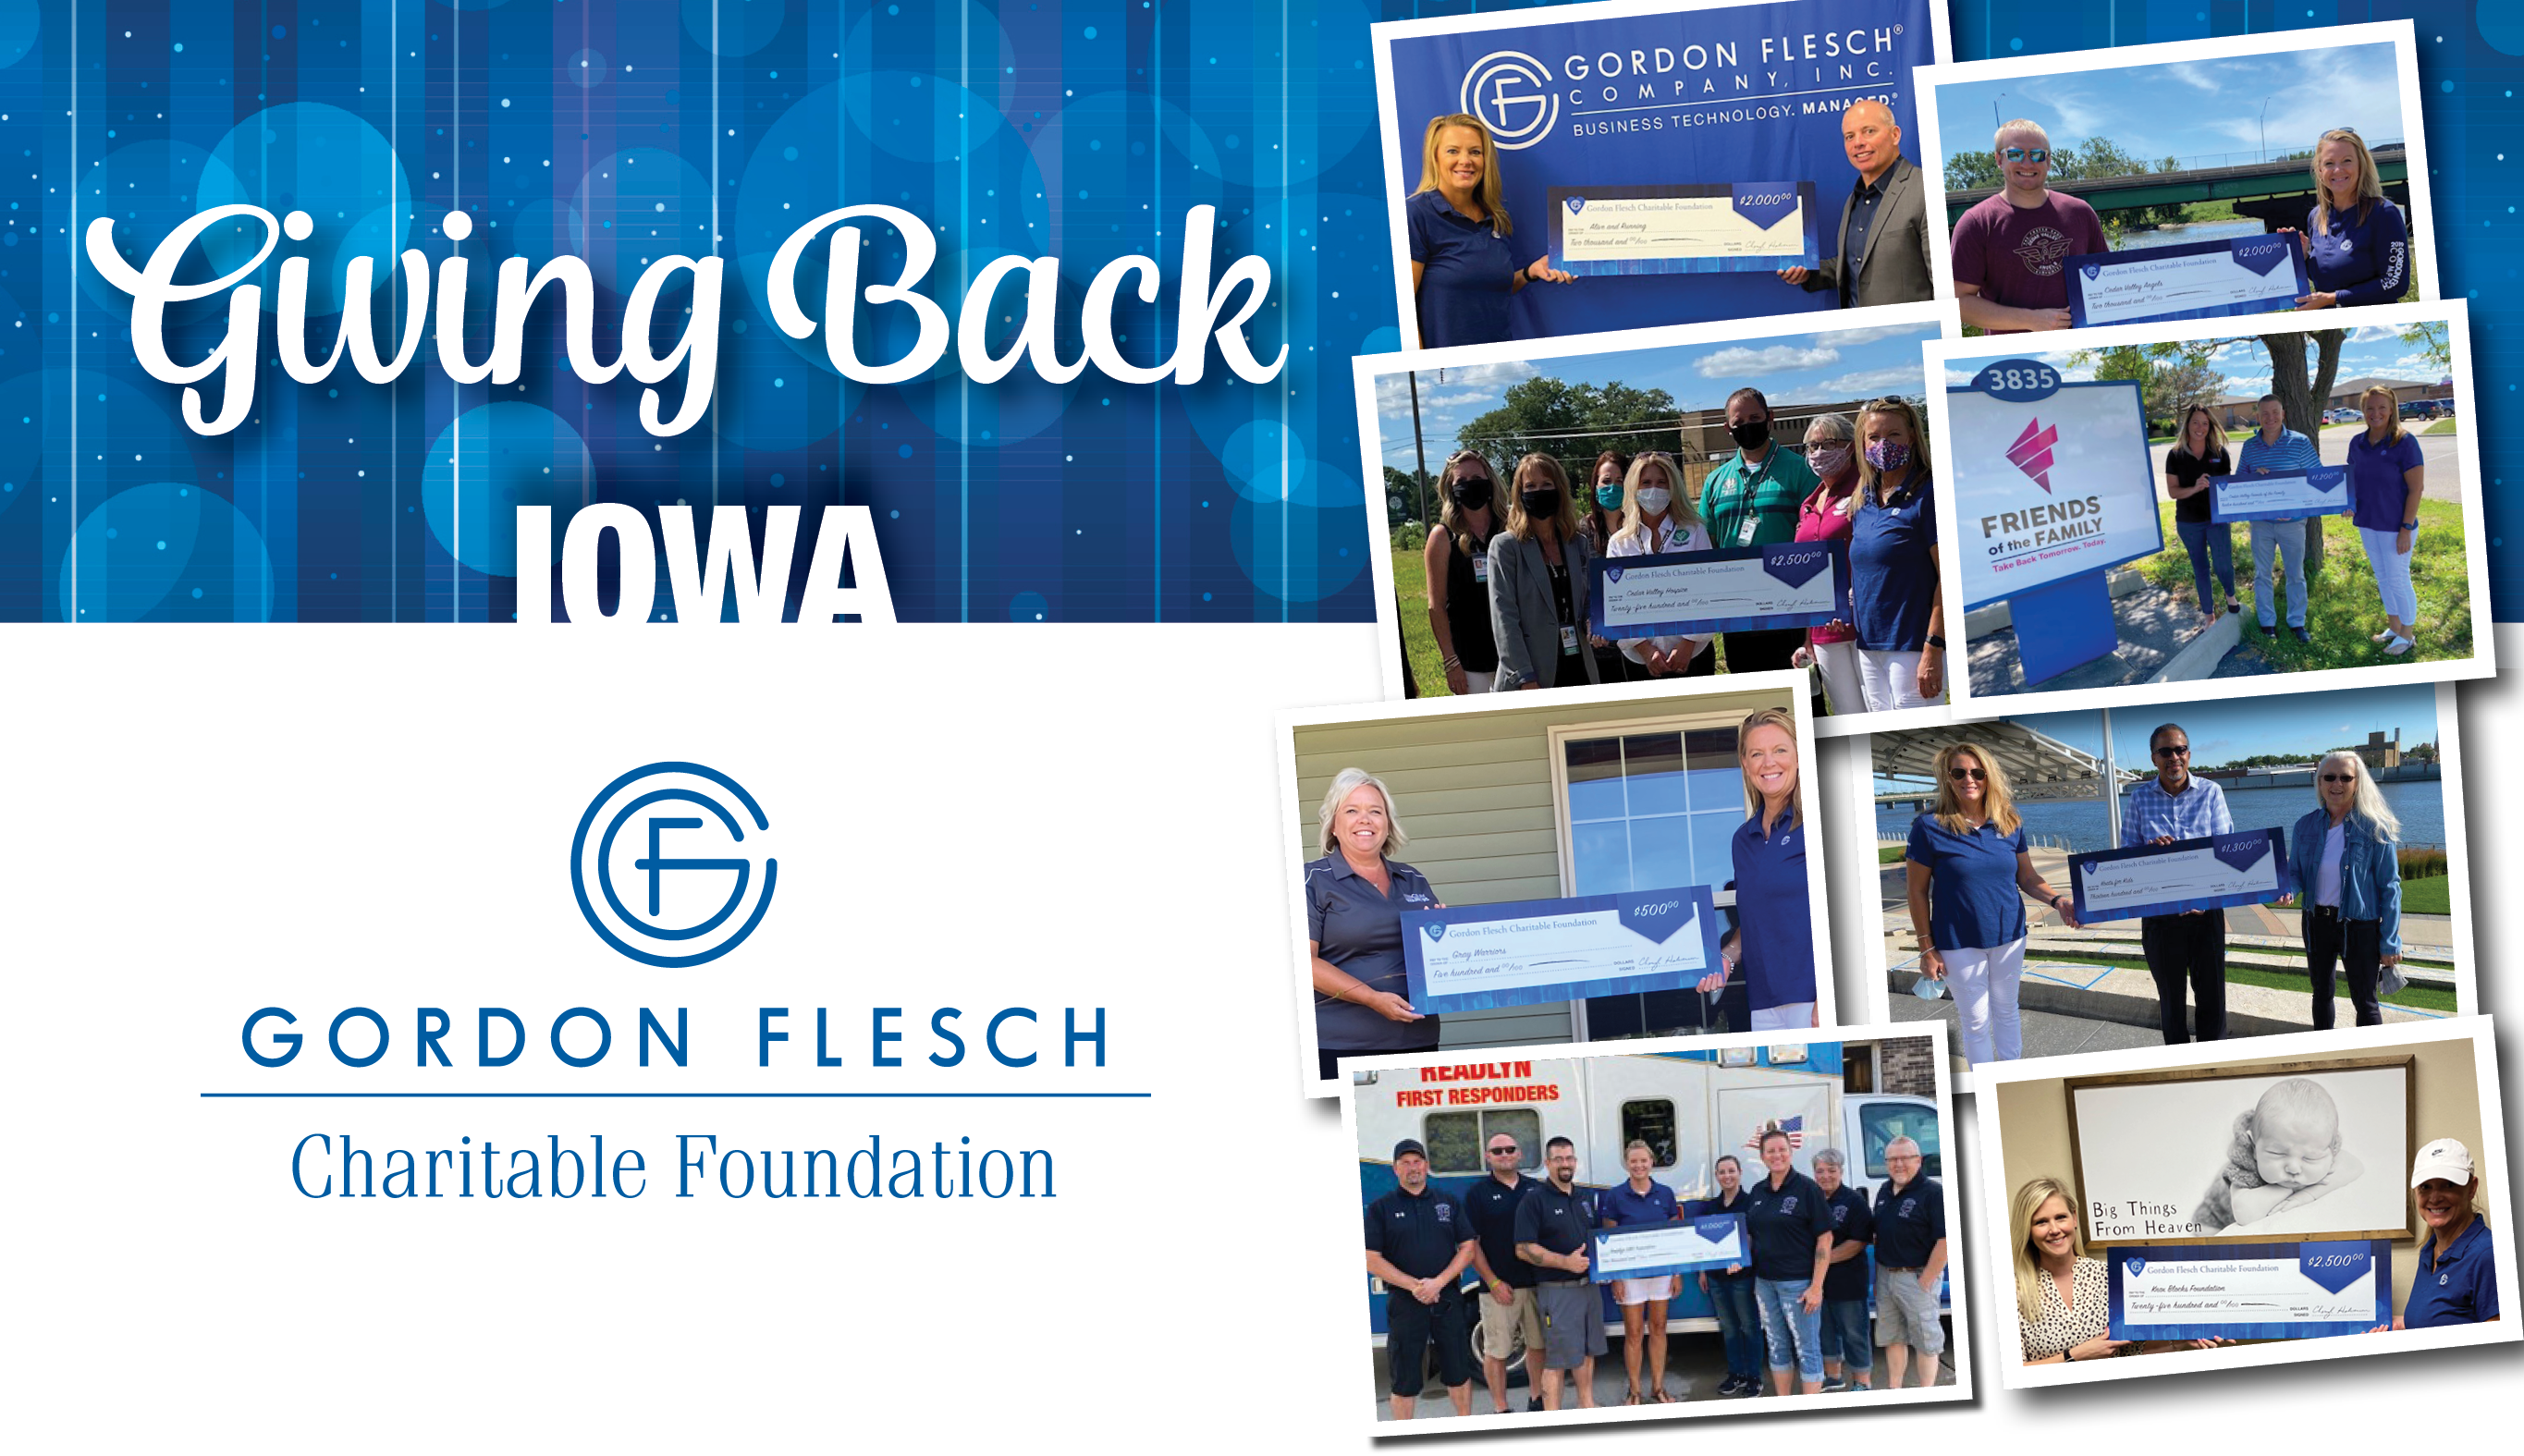 Gordon Flesch Charitable Foundation Donates $13,000 to Iowa-Area Charities